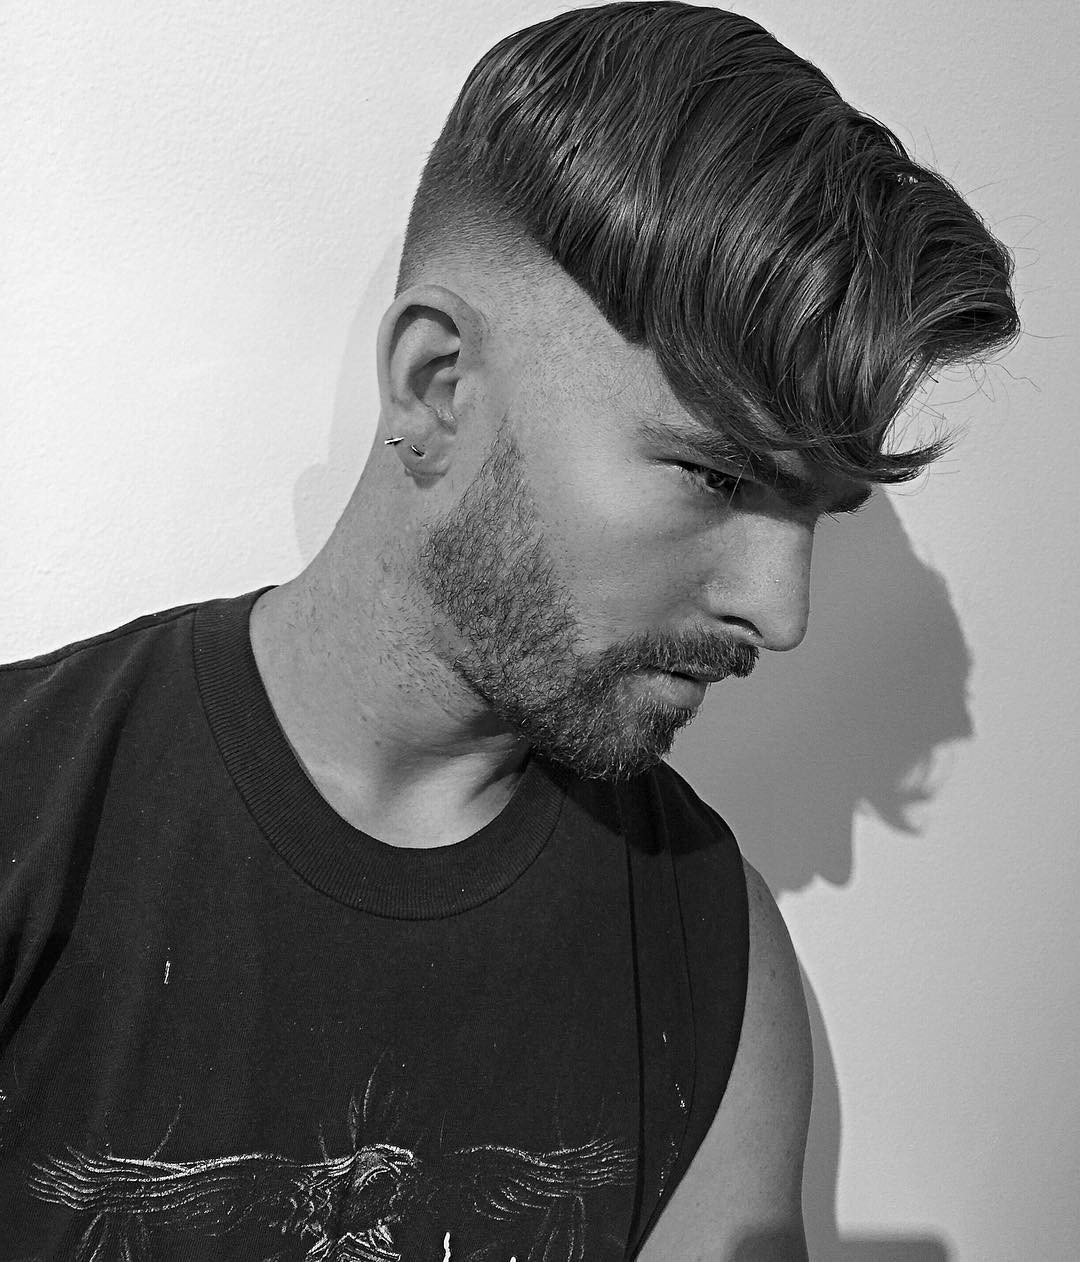 Best ideas about Undercut Hairstyle Men . Save or Pin 21 New Undercut Hairstyles For Men Now.